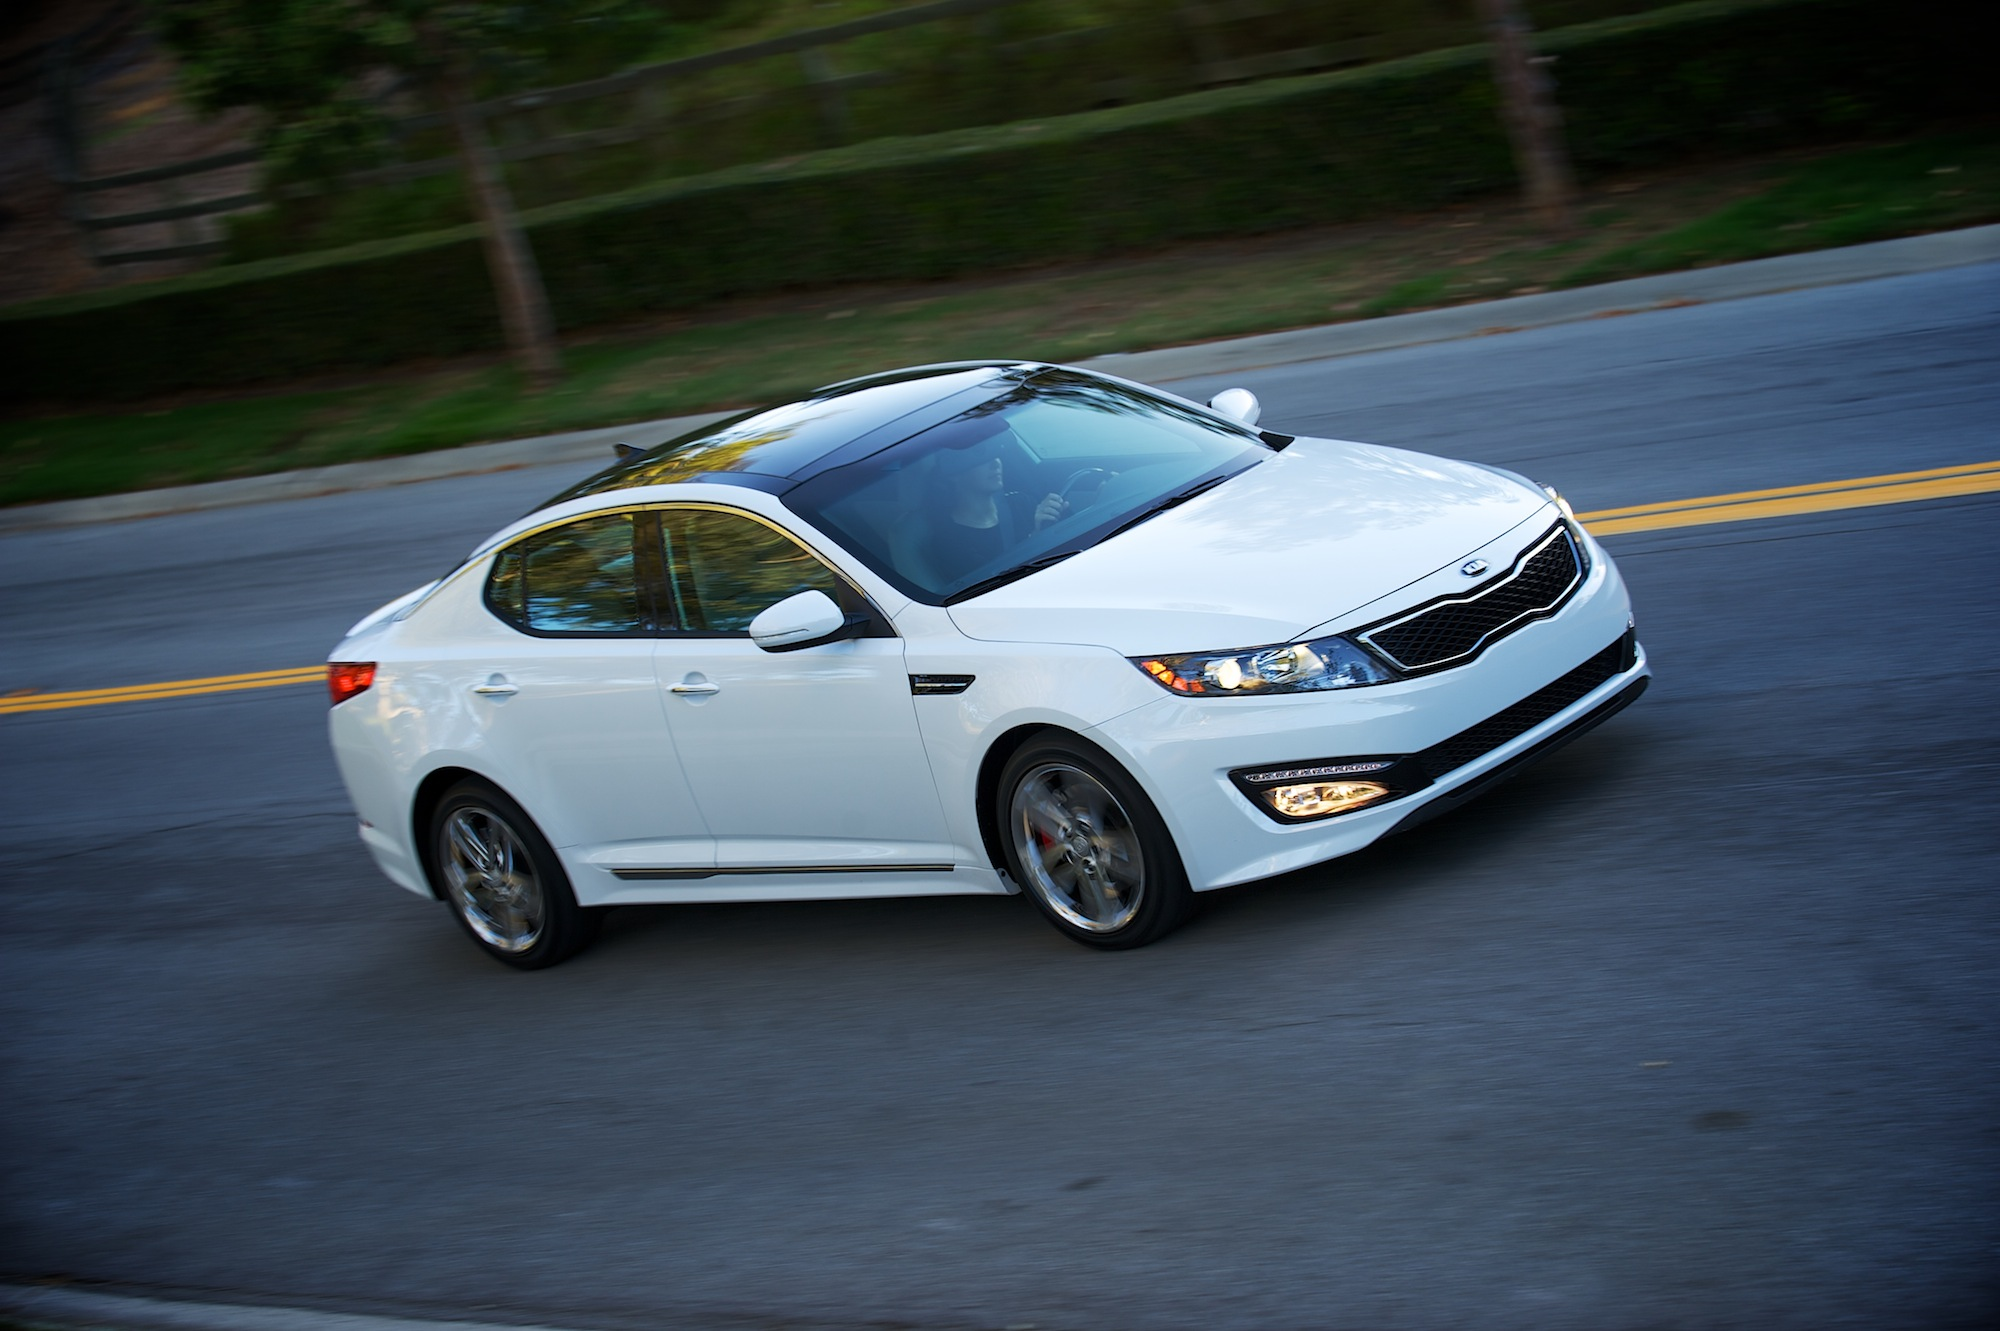 2013 Kia Optima Video Road Test